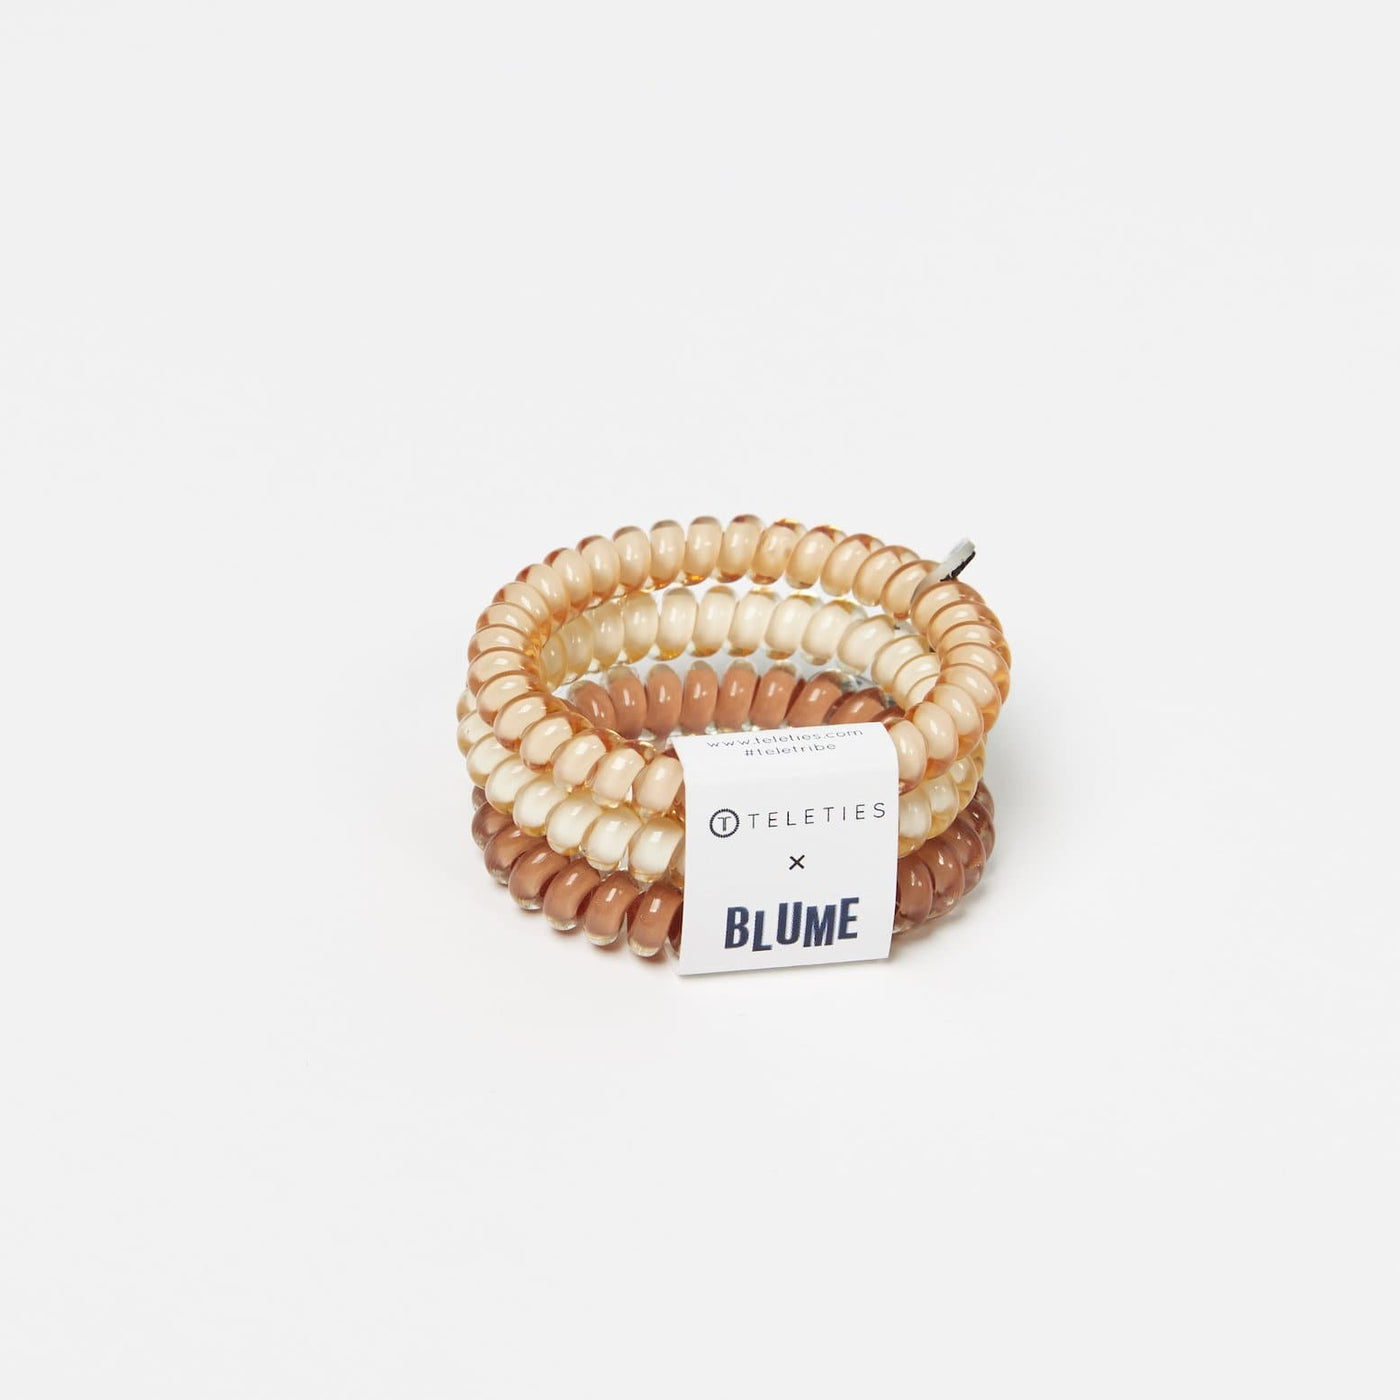 Blume x TELETIES Hair Ties